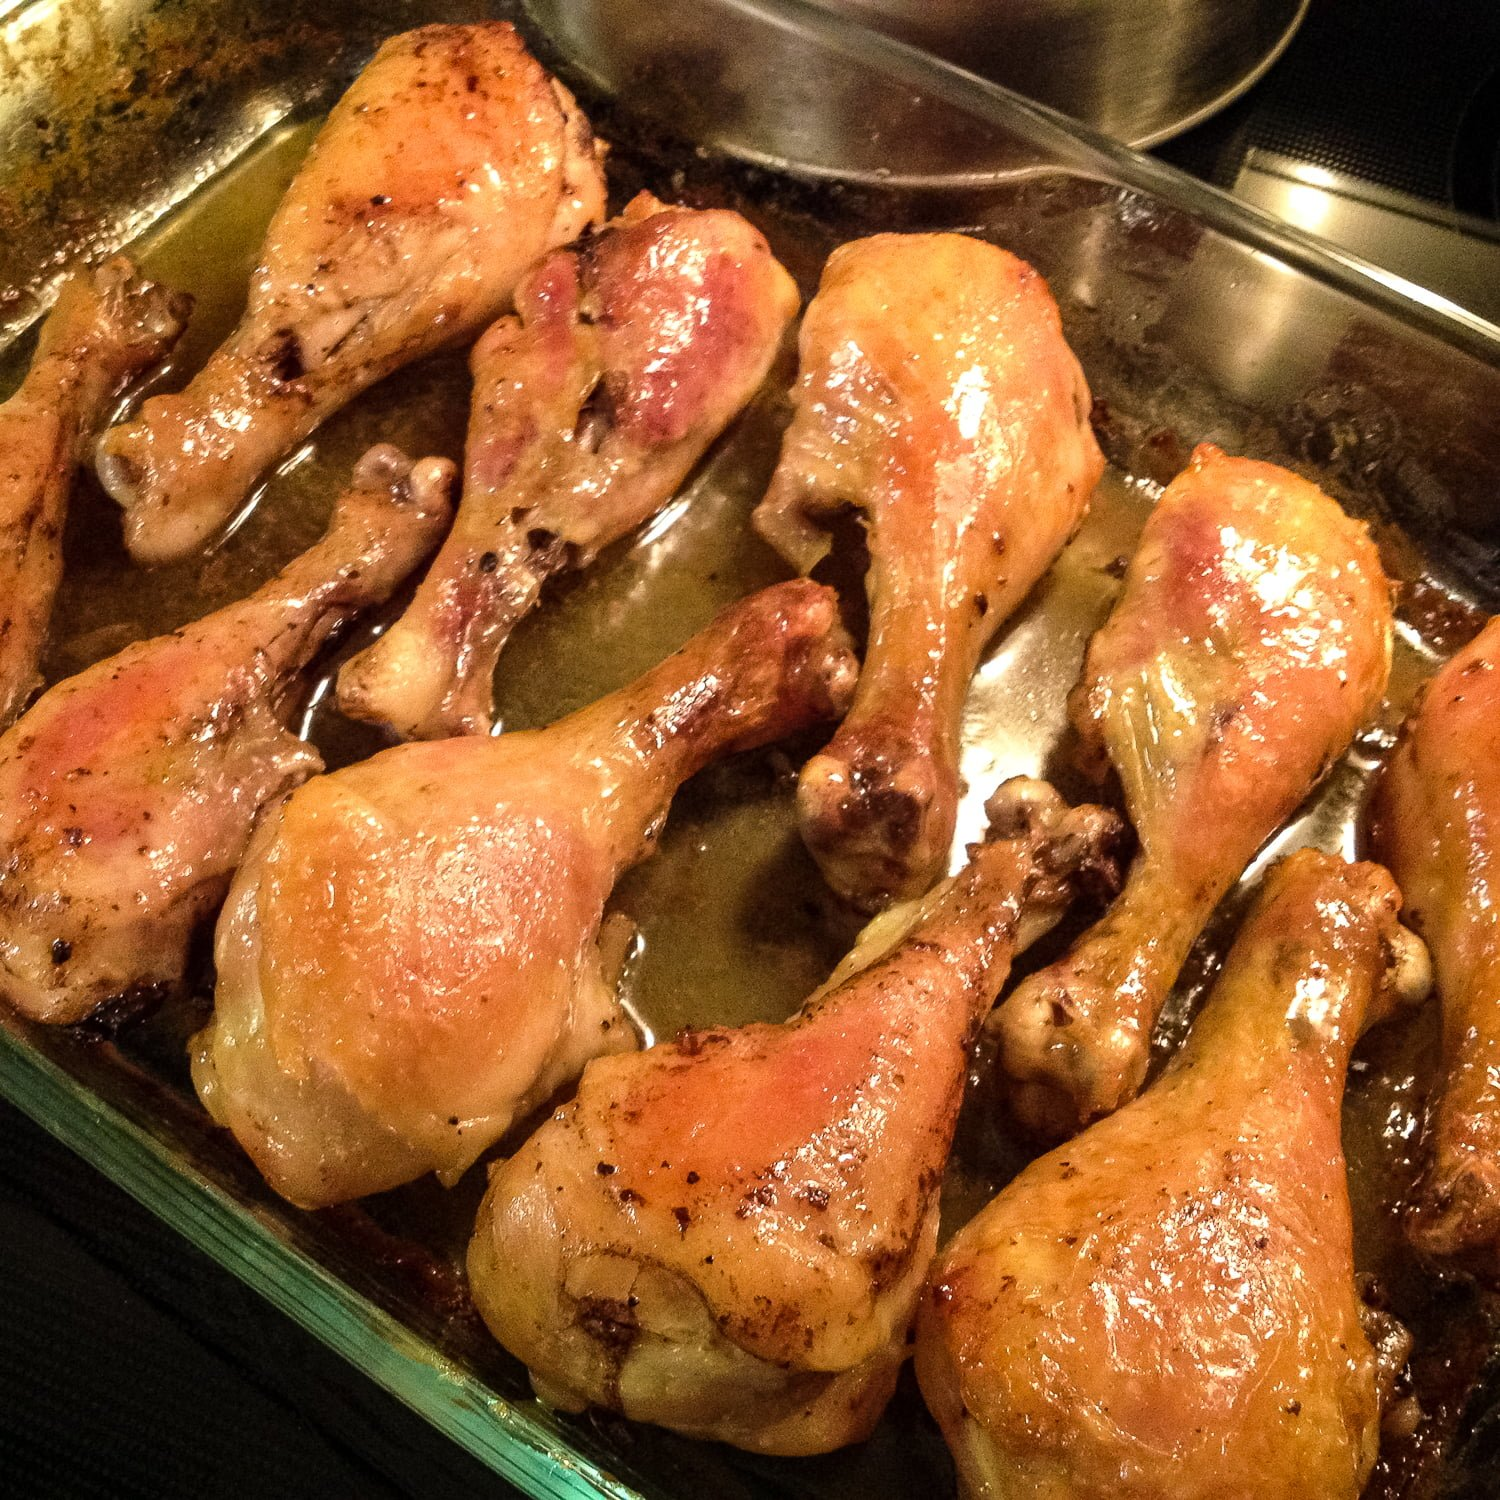 Brandy-Vanilla Butter Roasted Chicken Drumsticks- Fascinating recipe and so unusual! Delicious chicken drumsticks that are moist, perfumed and perfect for a fancy dinner.